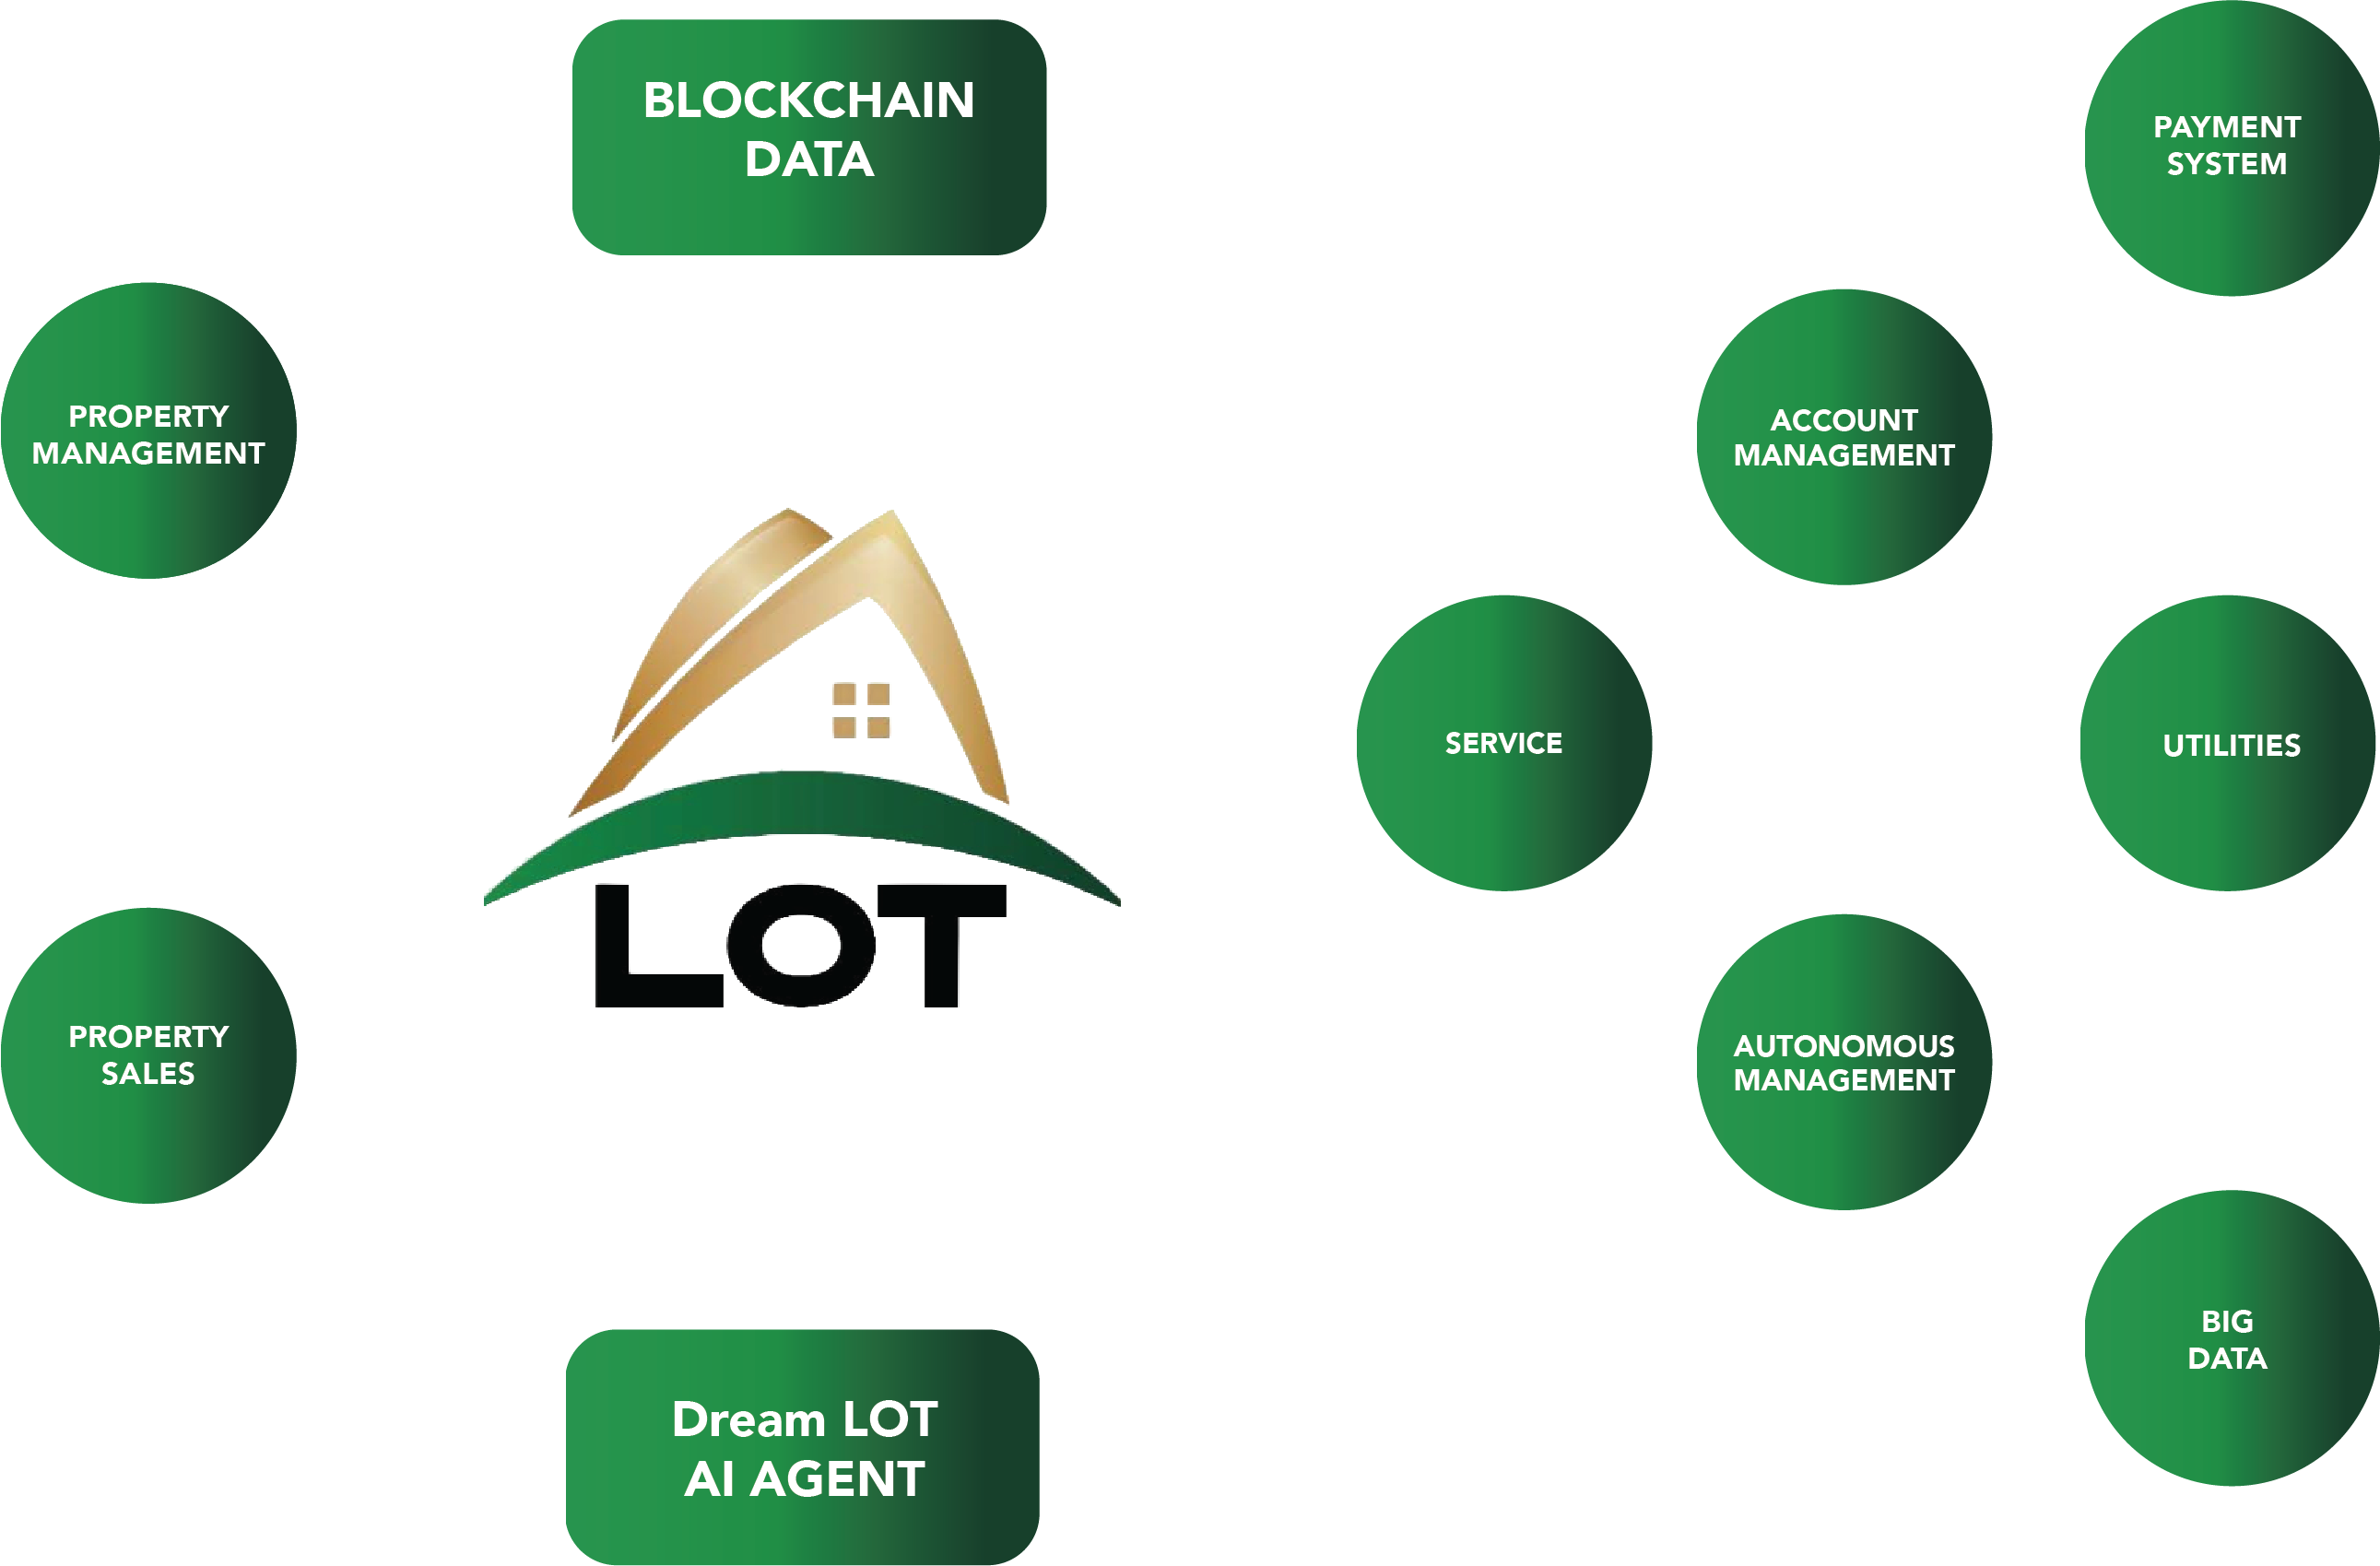 Dream LOT Tech - See how it works